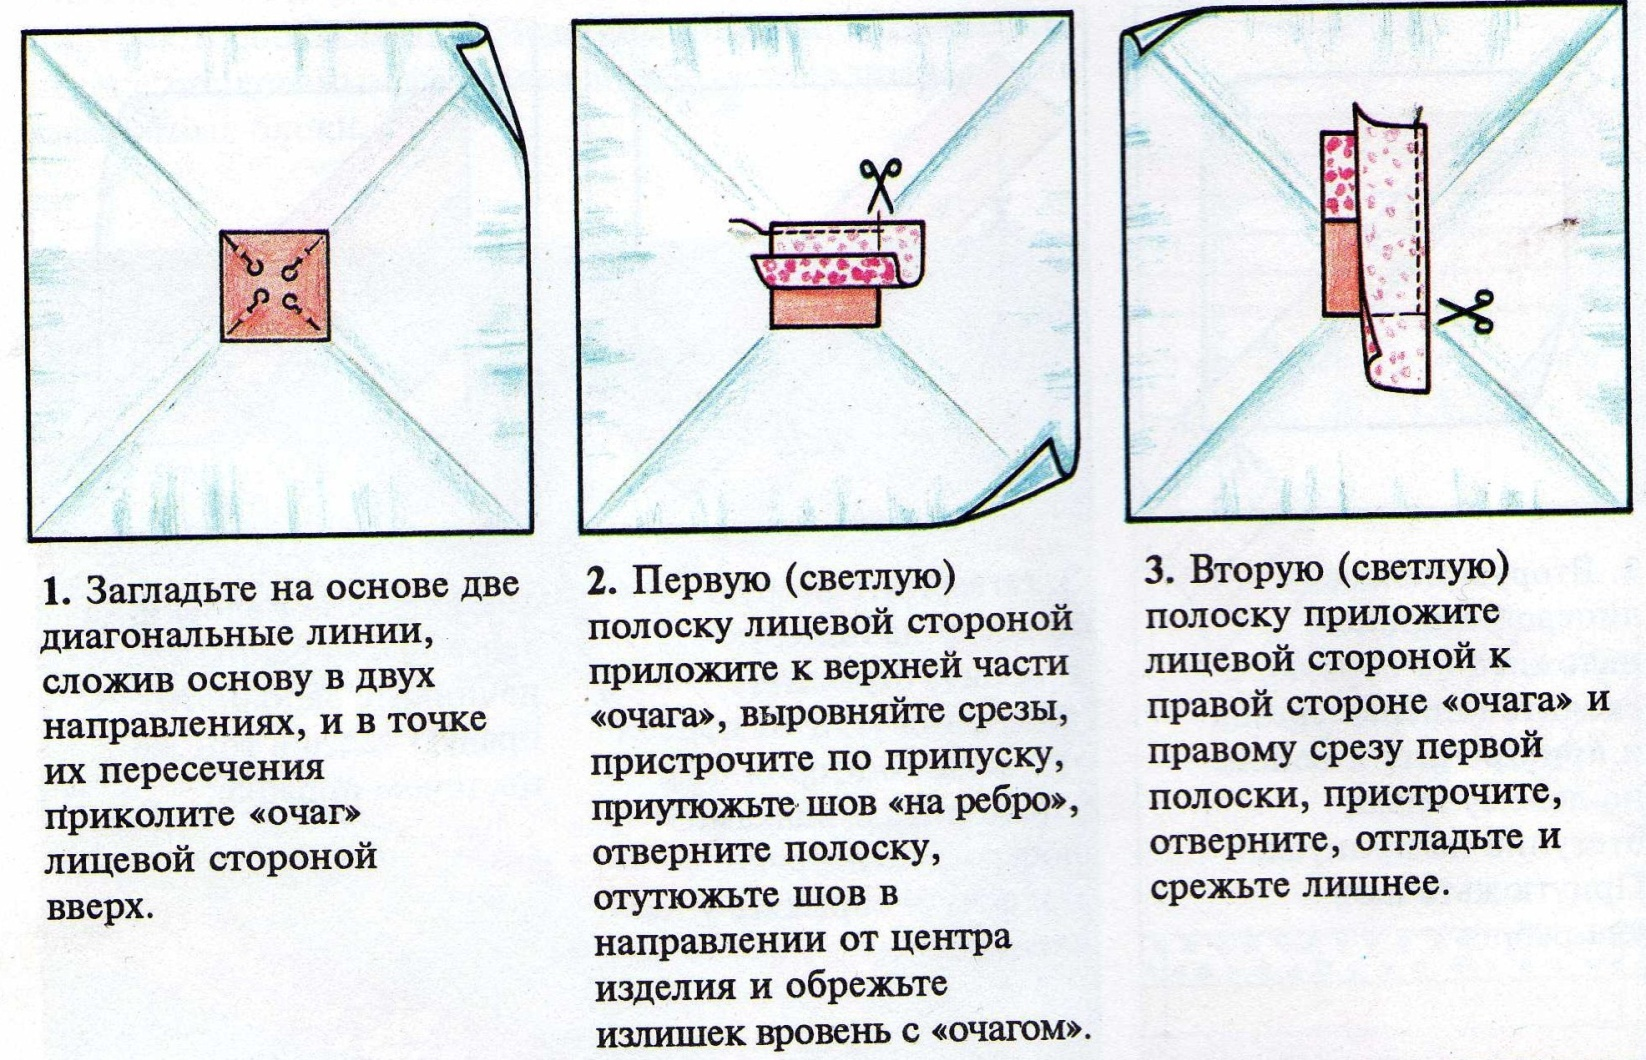 C:\Users\Карина\Pictures\img757.jpg